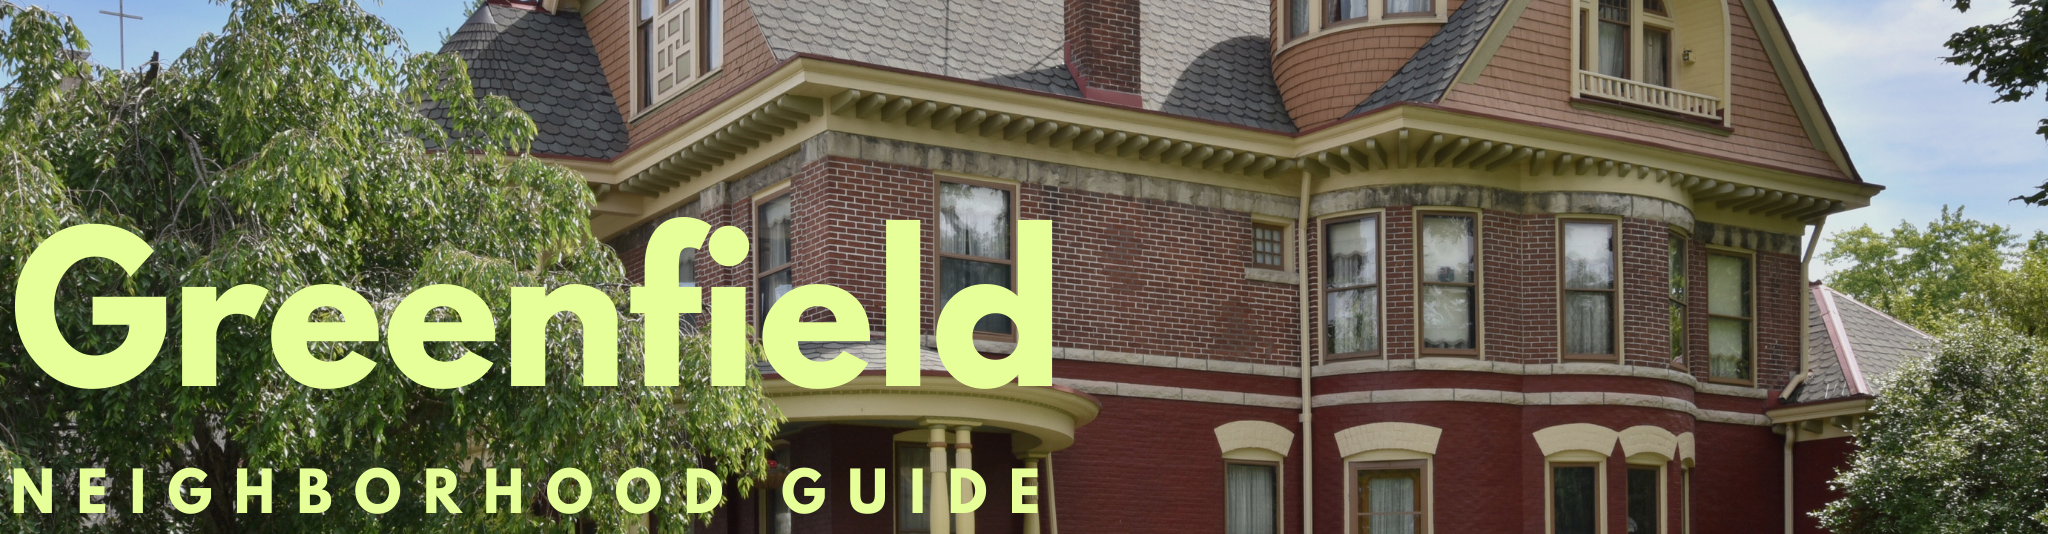 Greenfield Indiana neighborhood guide for real estate